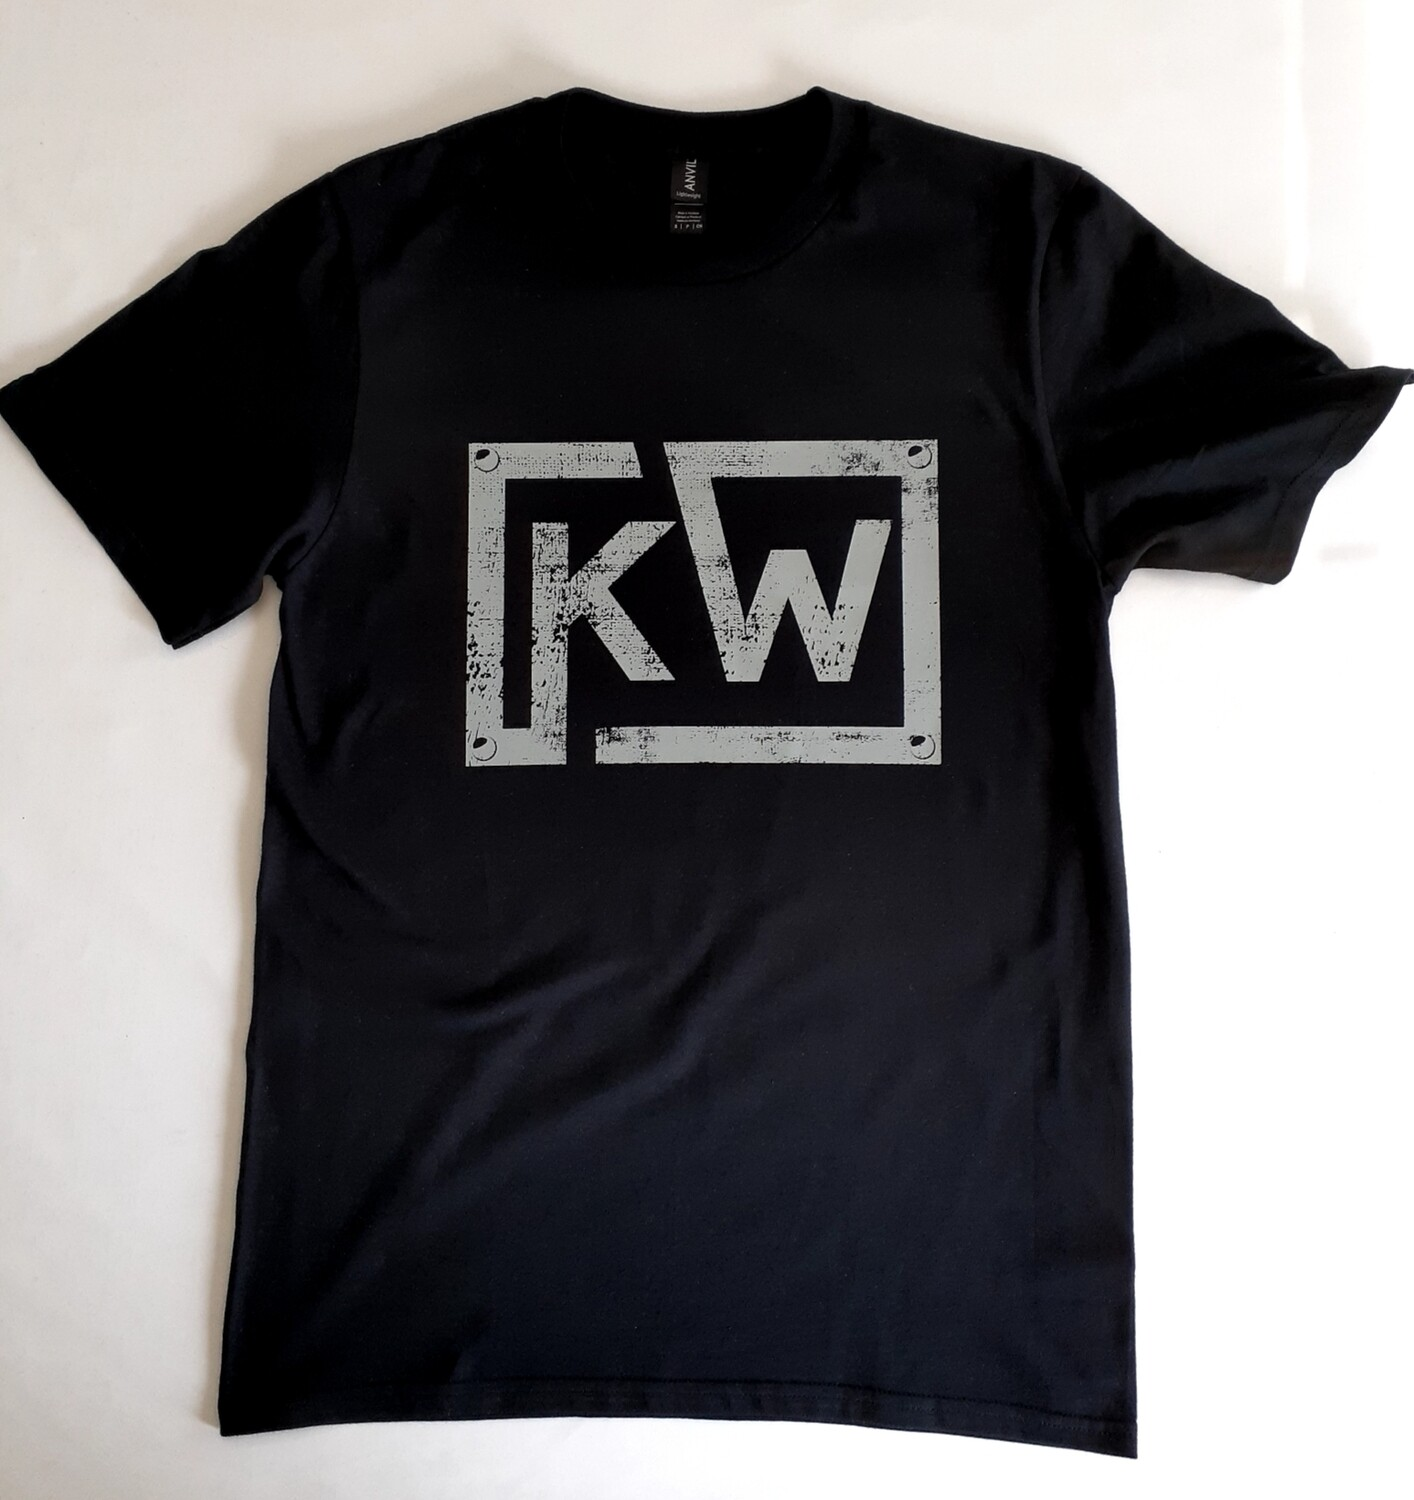 Black KW shirt